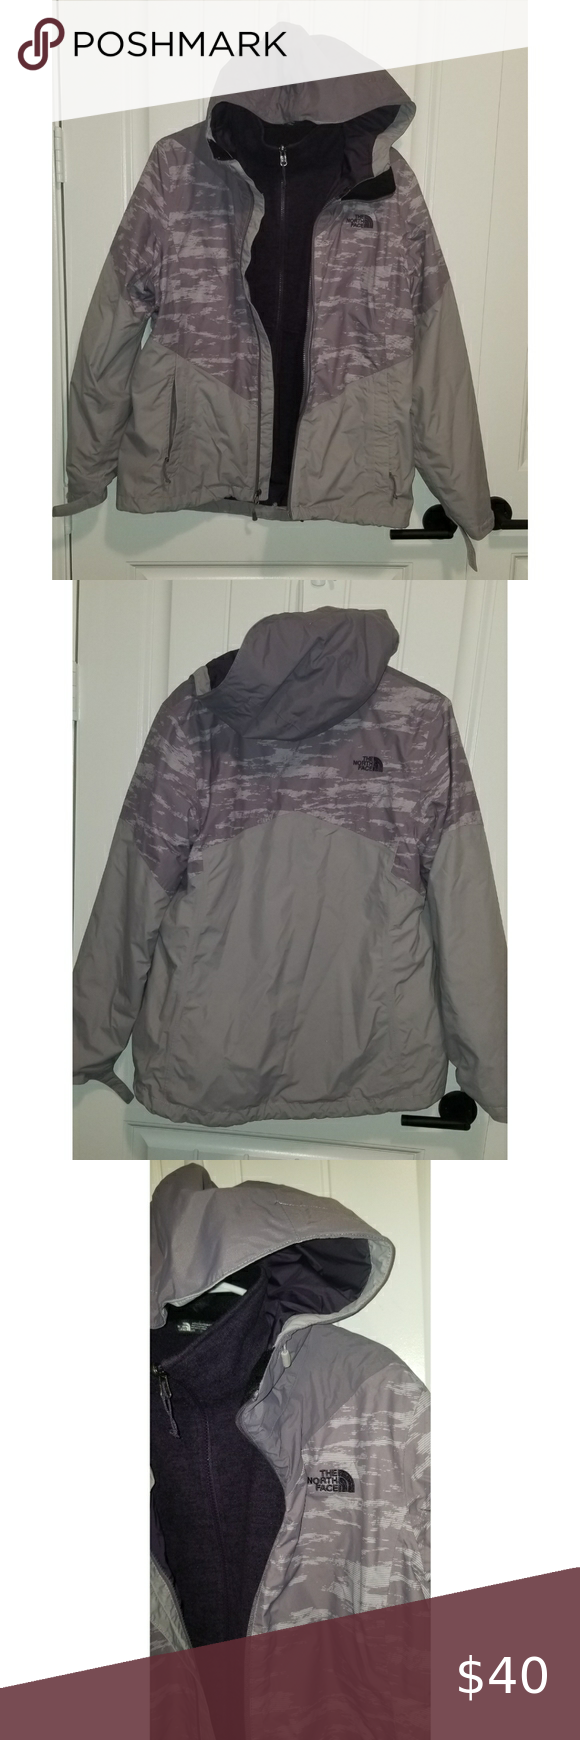 The North Face 2 In 1 Jacket Jackets The North Face Jackets For Women [ 1740 x 580 Pixel ]